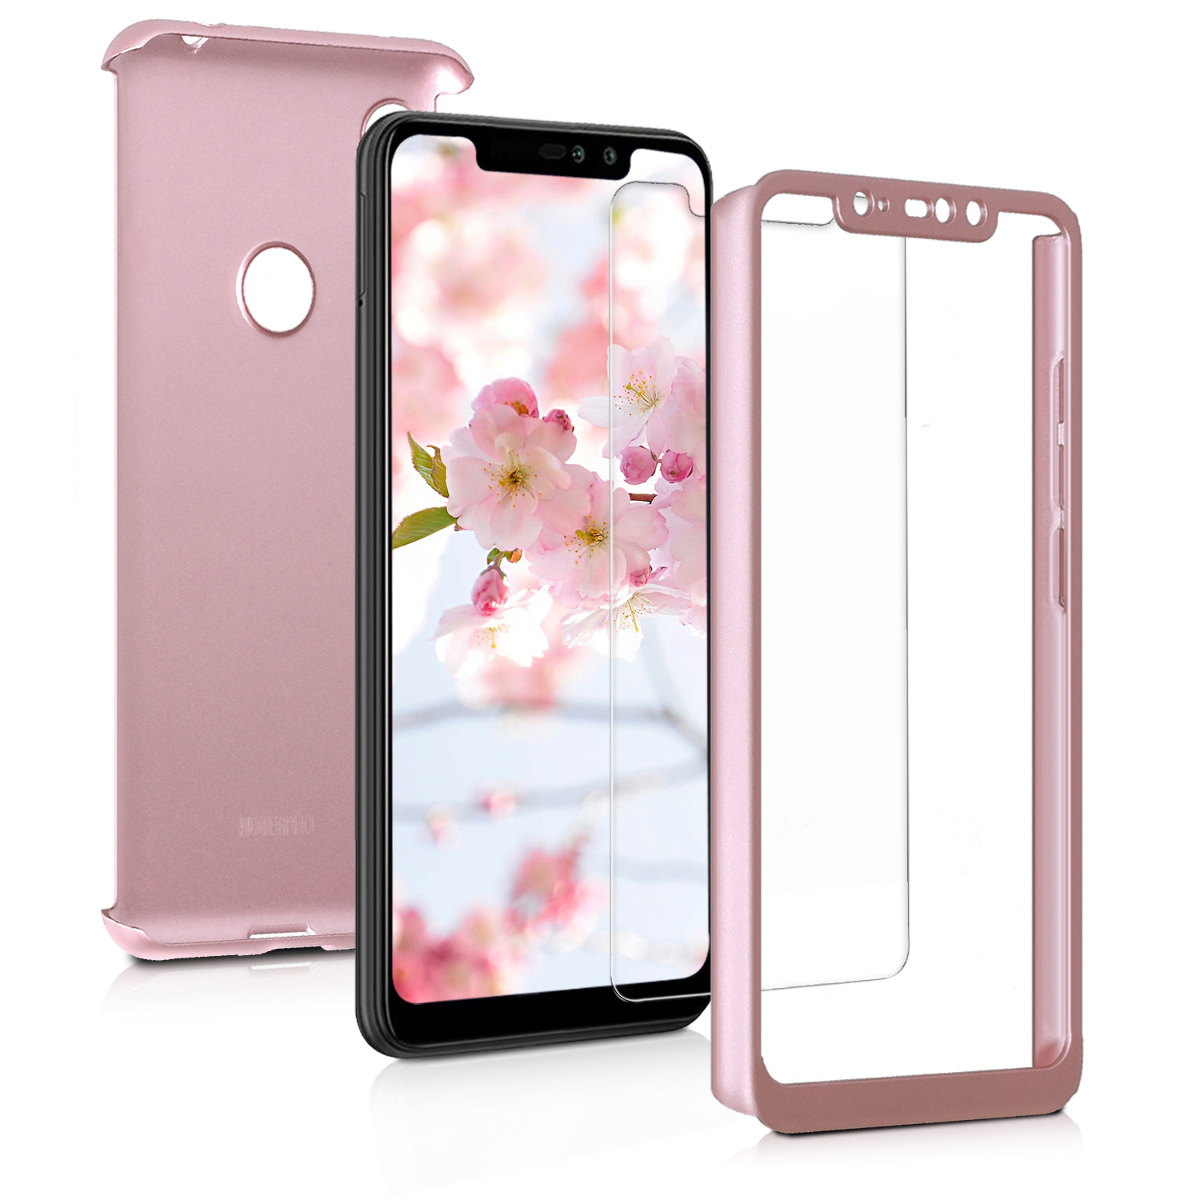 KW Θήκη Full Body για Xiaomi Redmi Note 6 Pro & Tempered Glass - Metallic Rose Gold (46507.31)